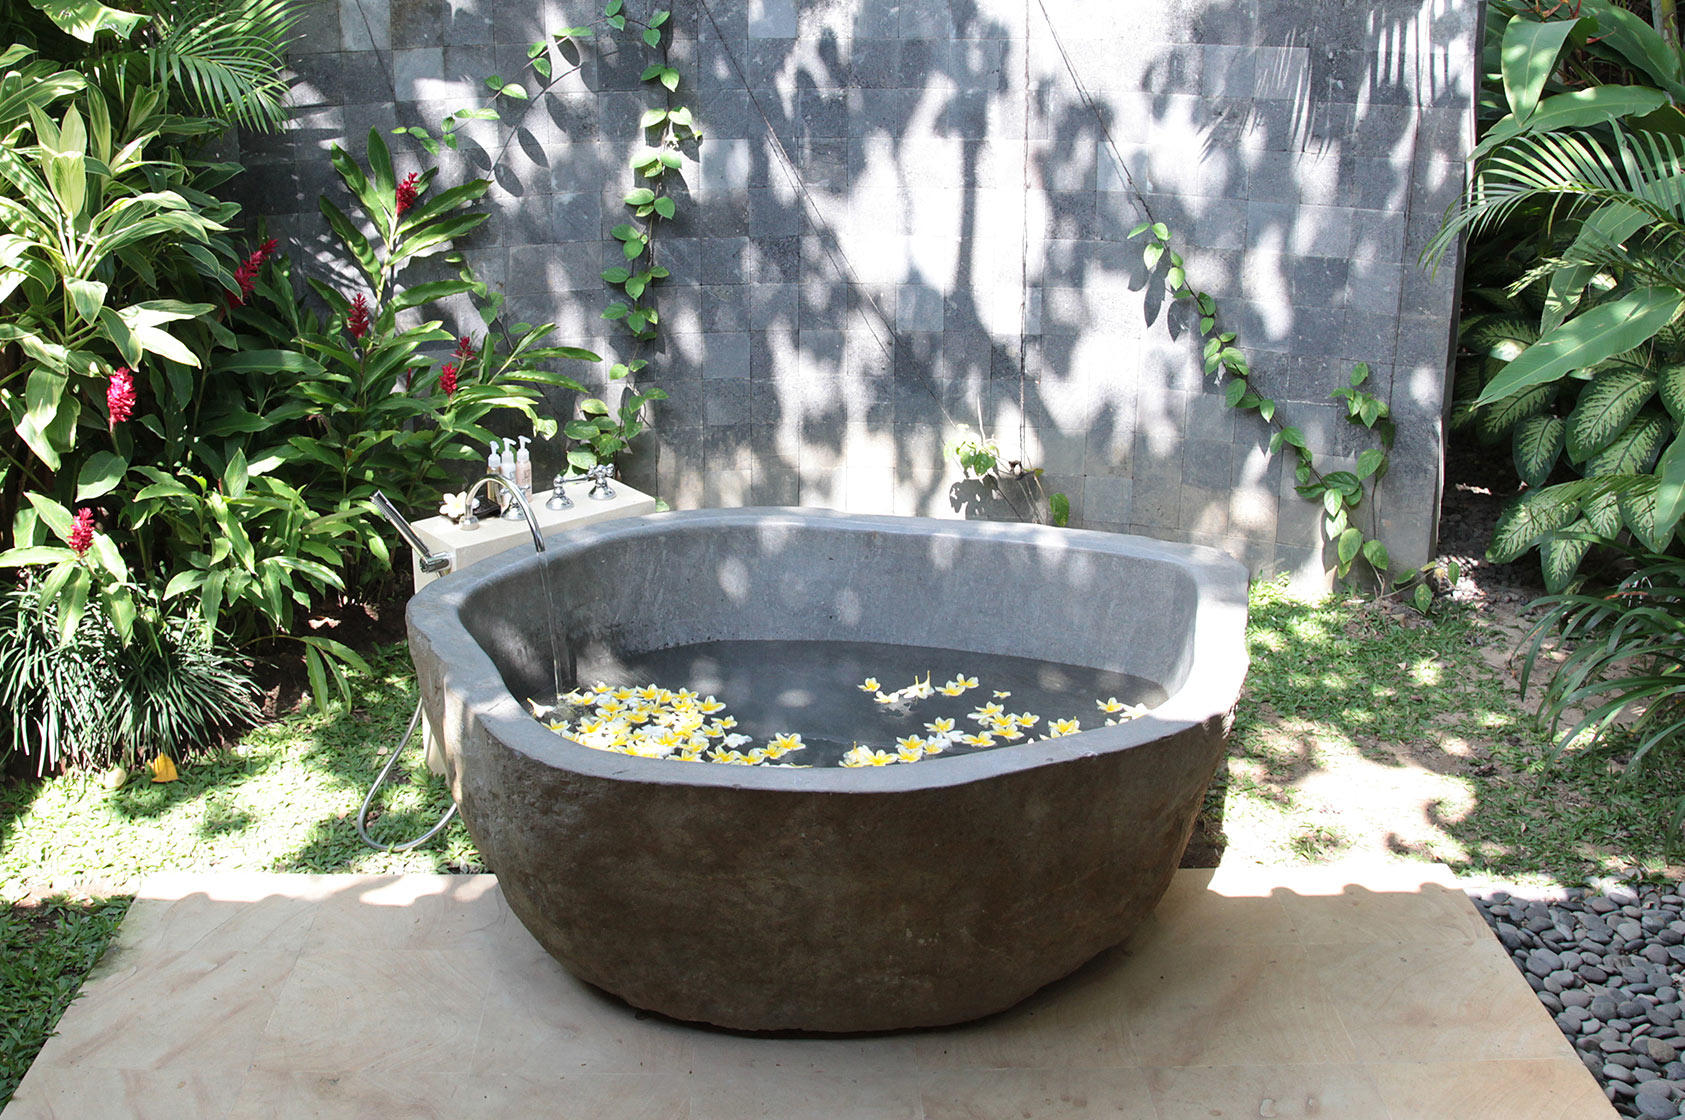 Stone bathtub in the backyard